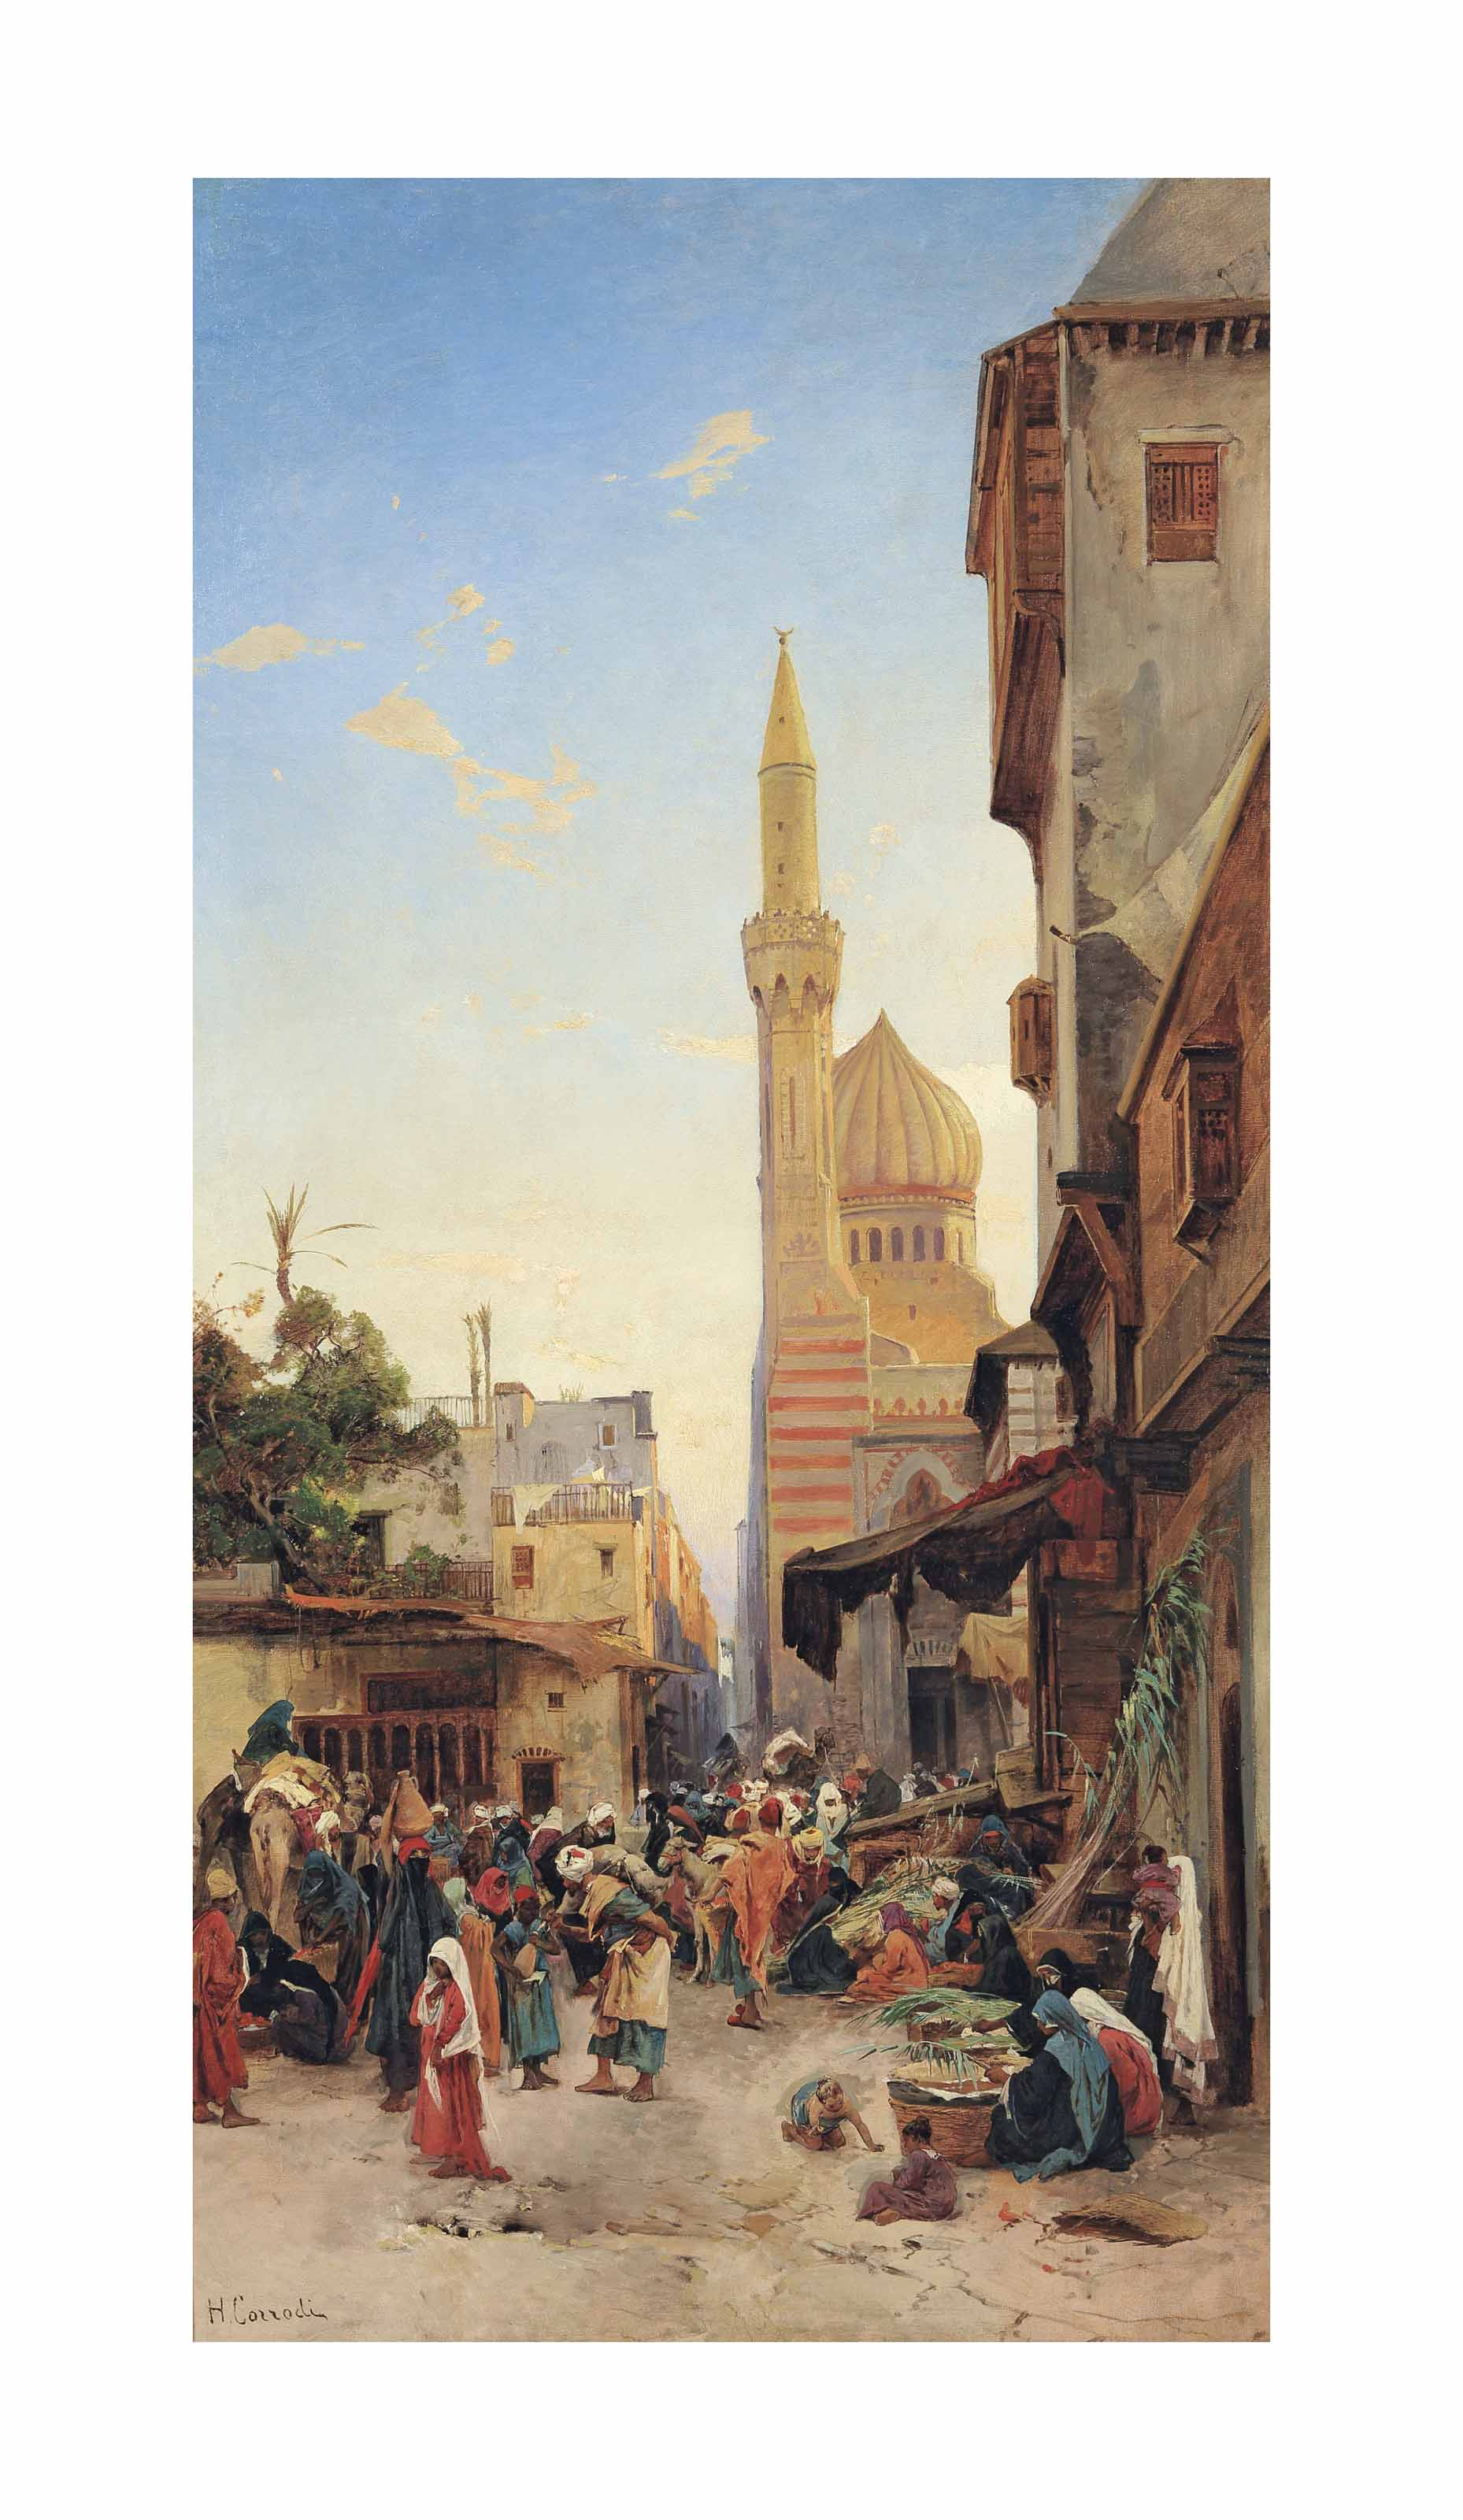 A market in Cairo